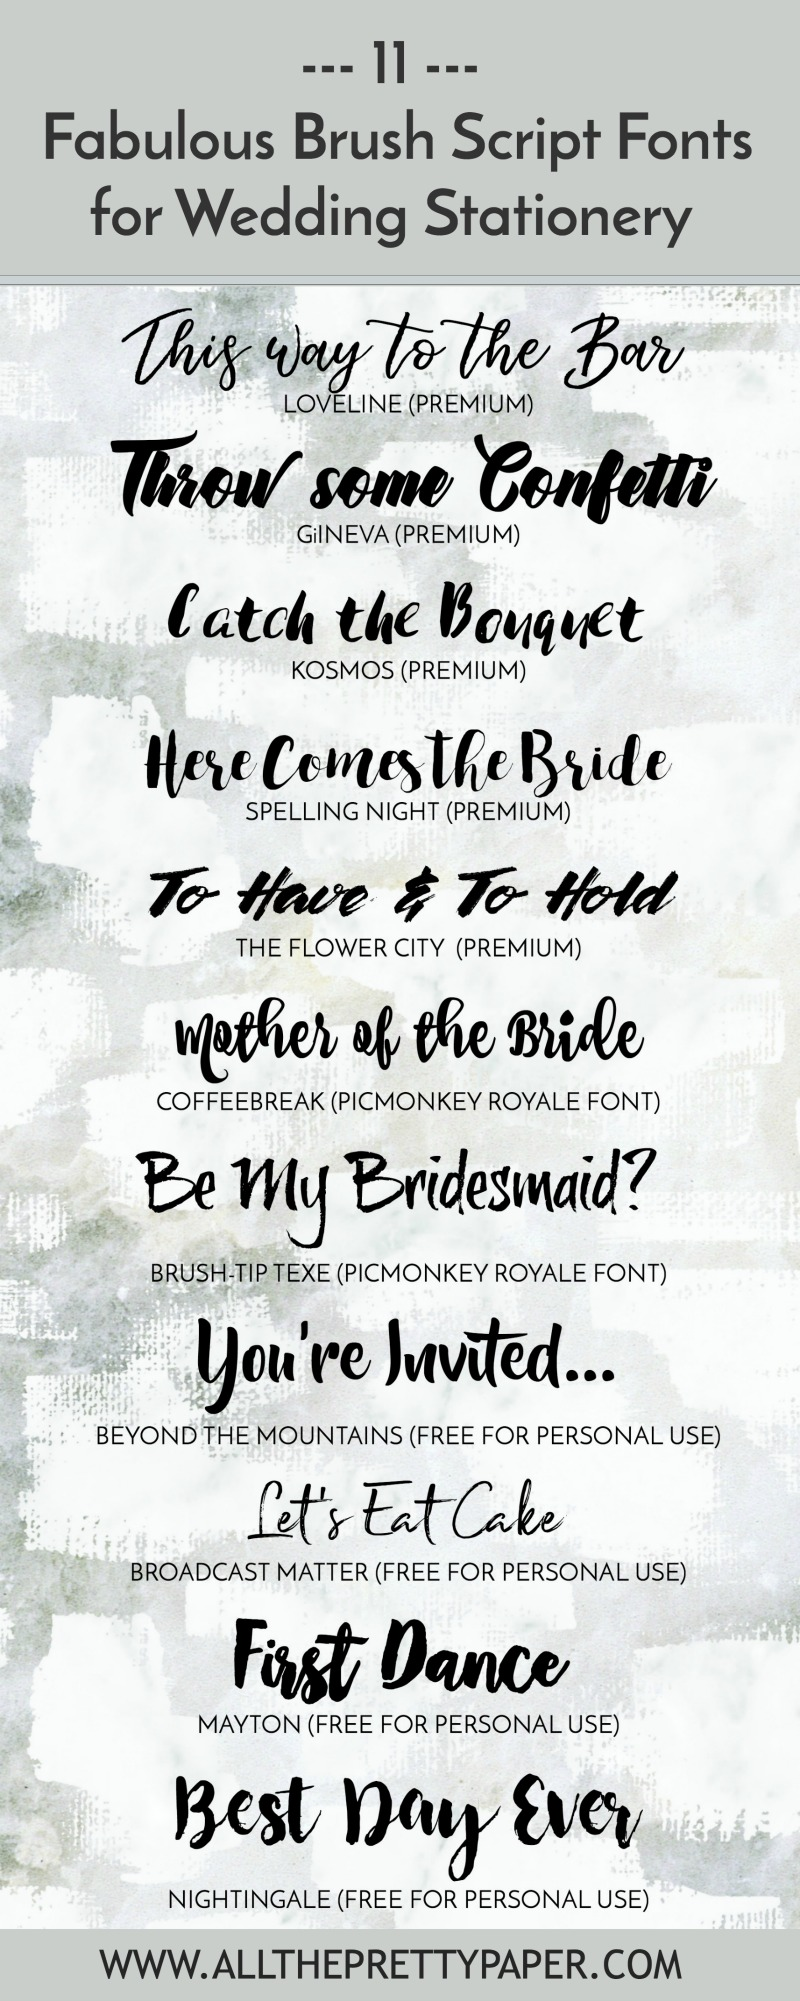 11 of the best brush script fonts for wedding stationery - including a range of premium and free hand lettering, calligraphy and brush fonts